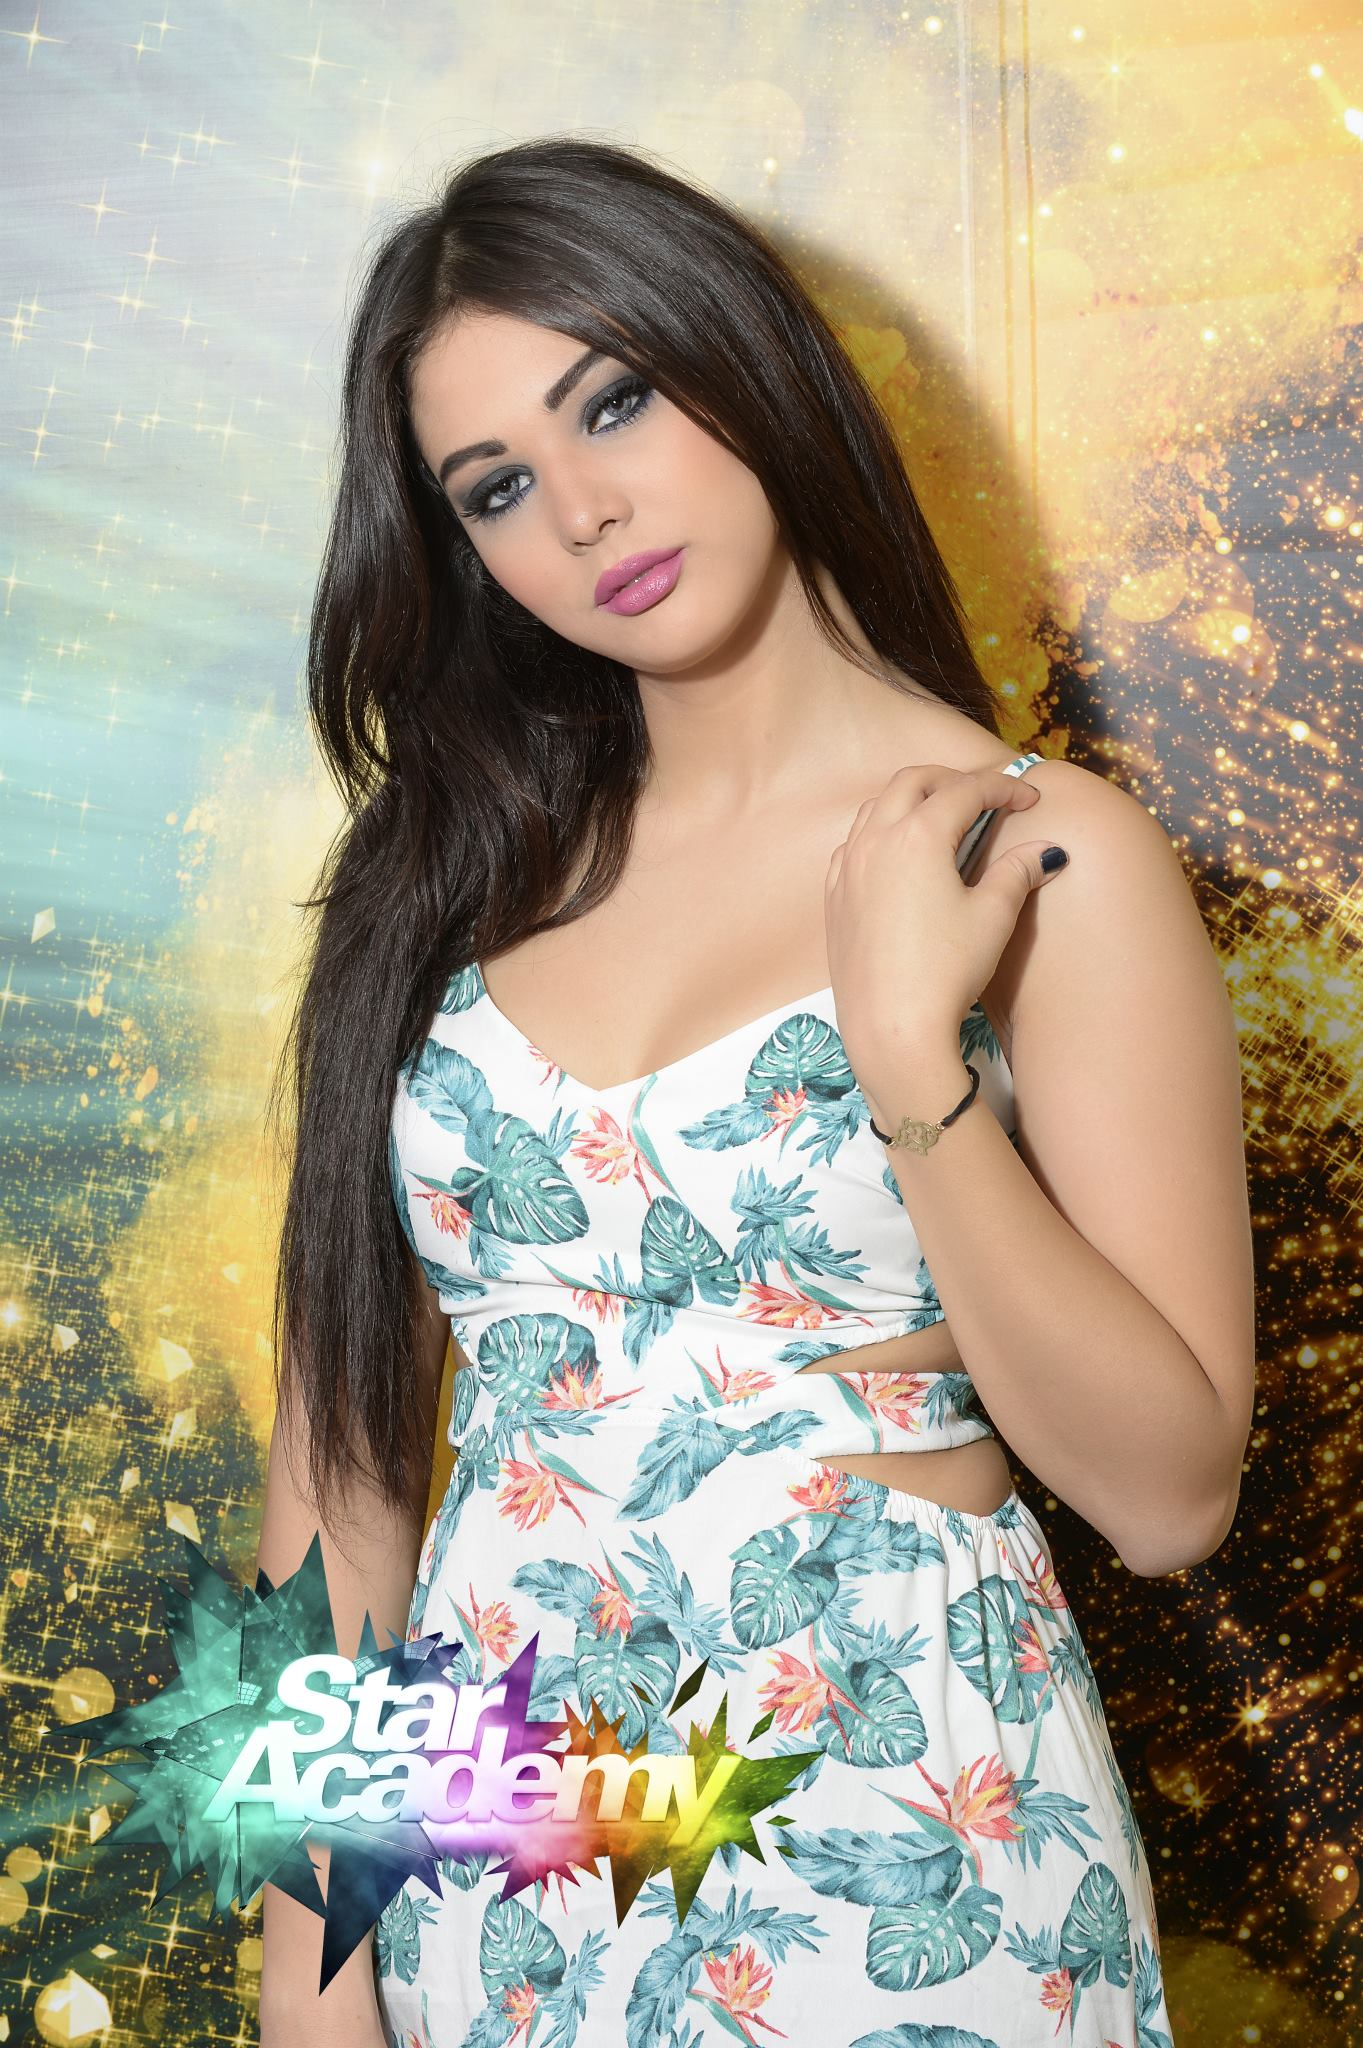 La Belle Marocaine Ibtissam Tiskat Photos Beaut